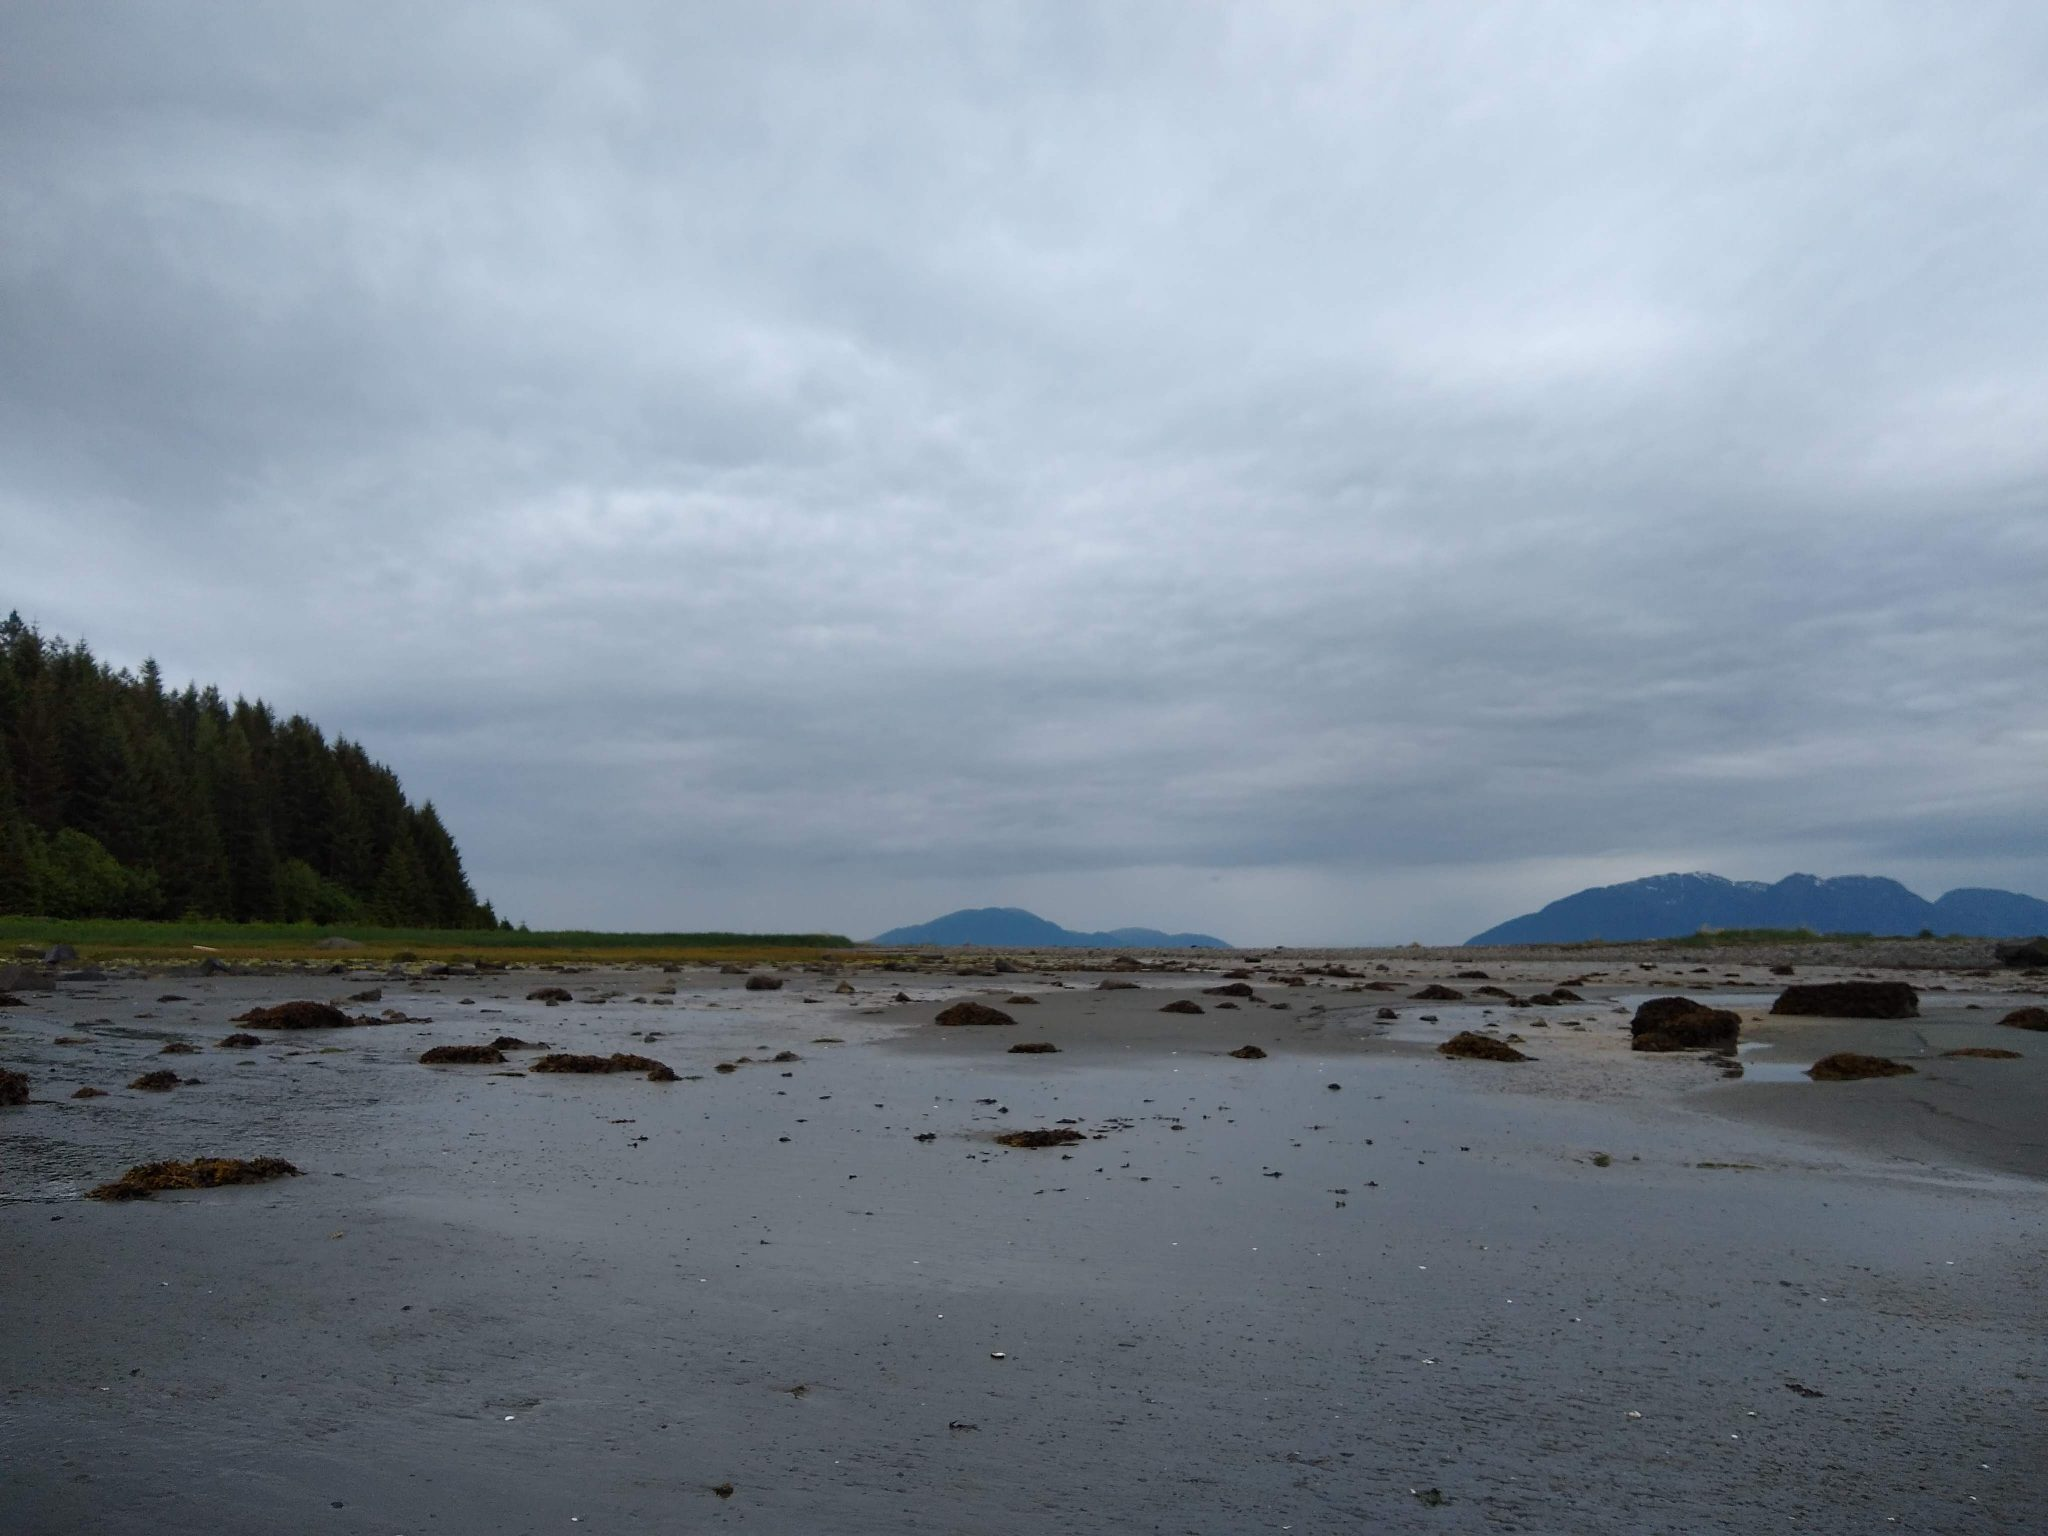 A beach at low tide with sand and rocks, there are forested, green hills around it. It's a gray, rainy day, the picture is very dark on a visit to glacier bay national park